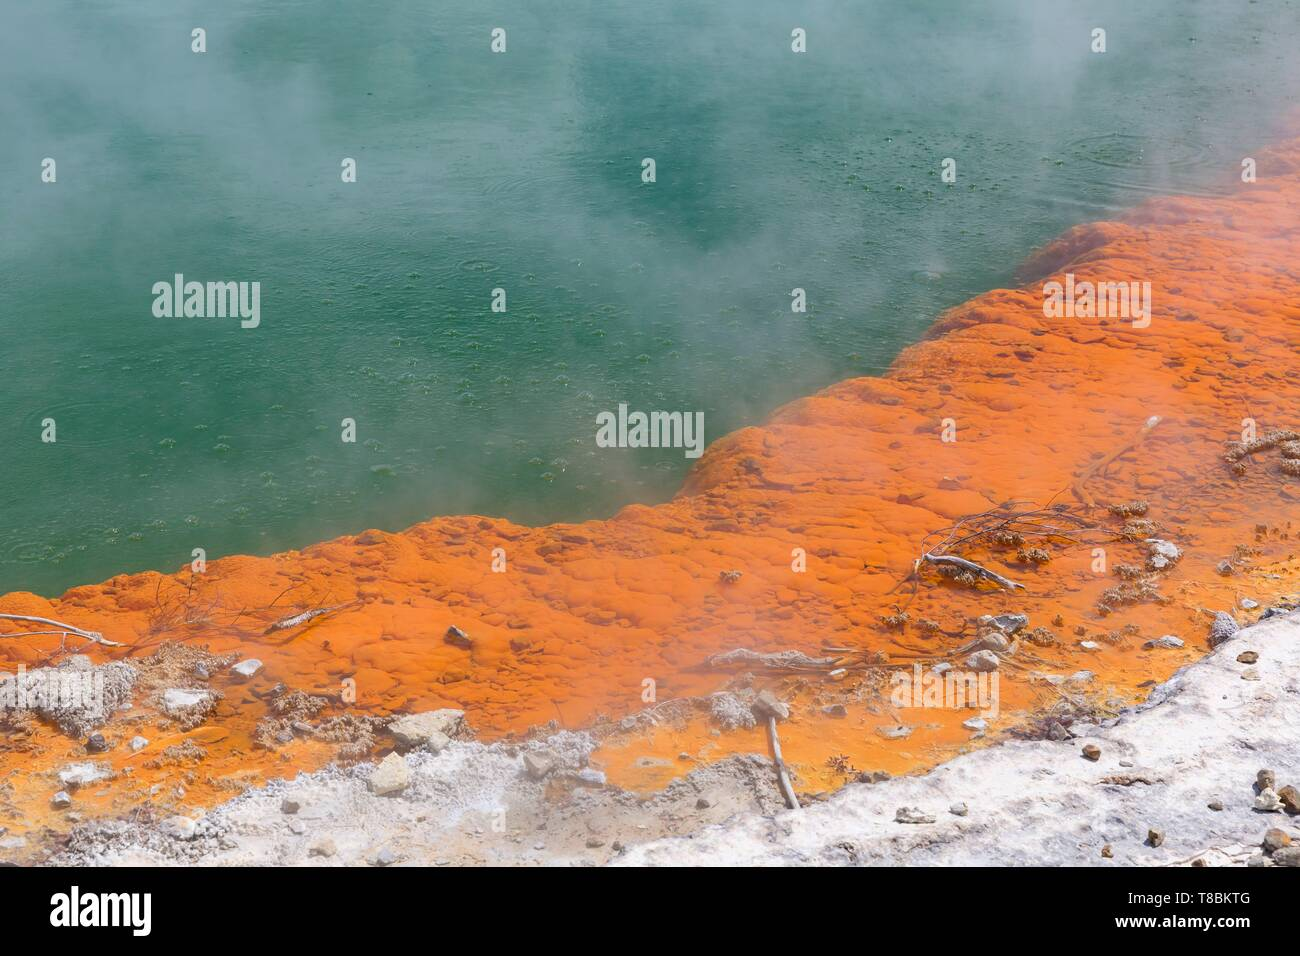 New Zealand, North Island, Waikato region, Taupo Volcanic Zone, Wai-O-Tapu Geothermal Park, Champagne Pool - Stock Image